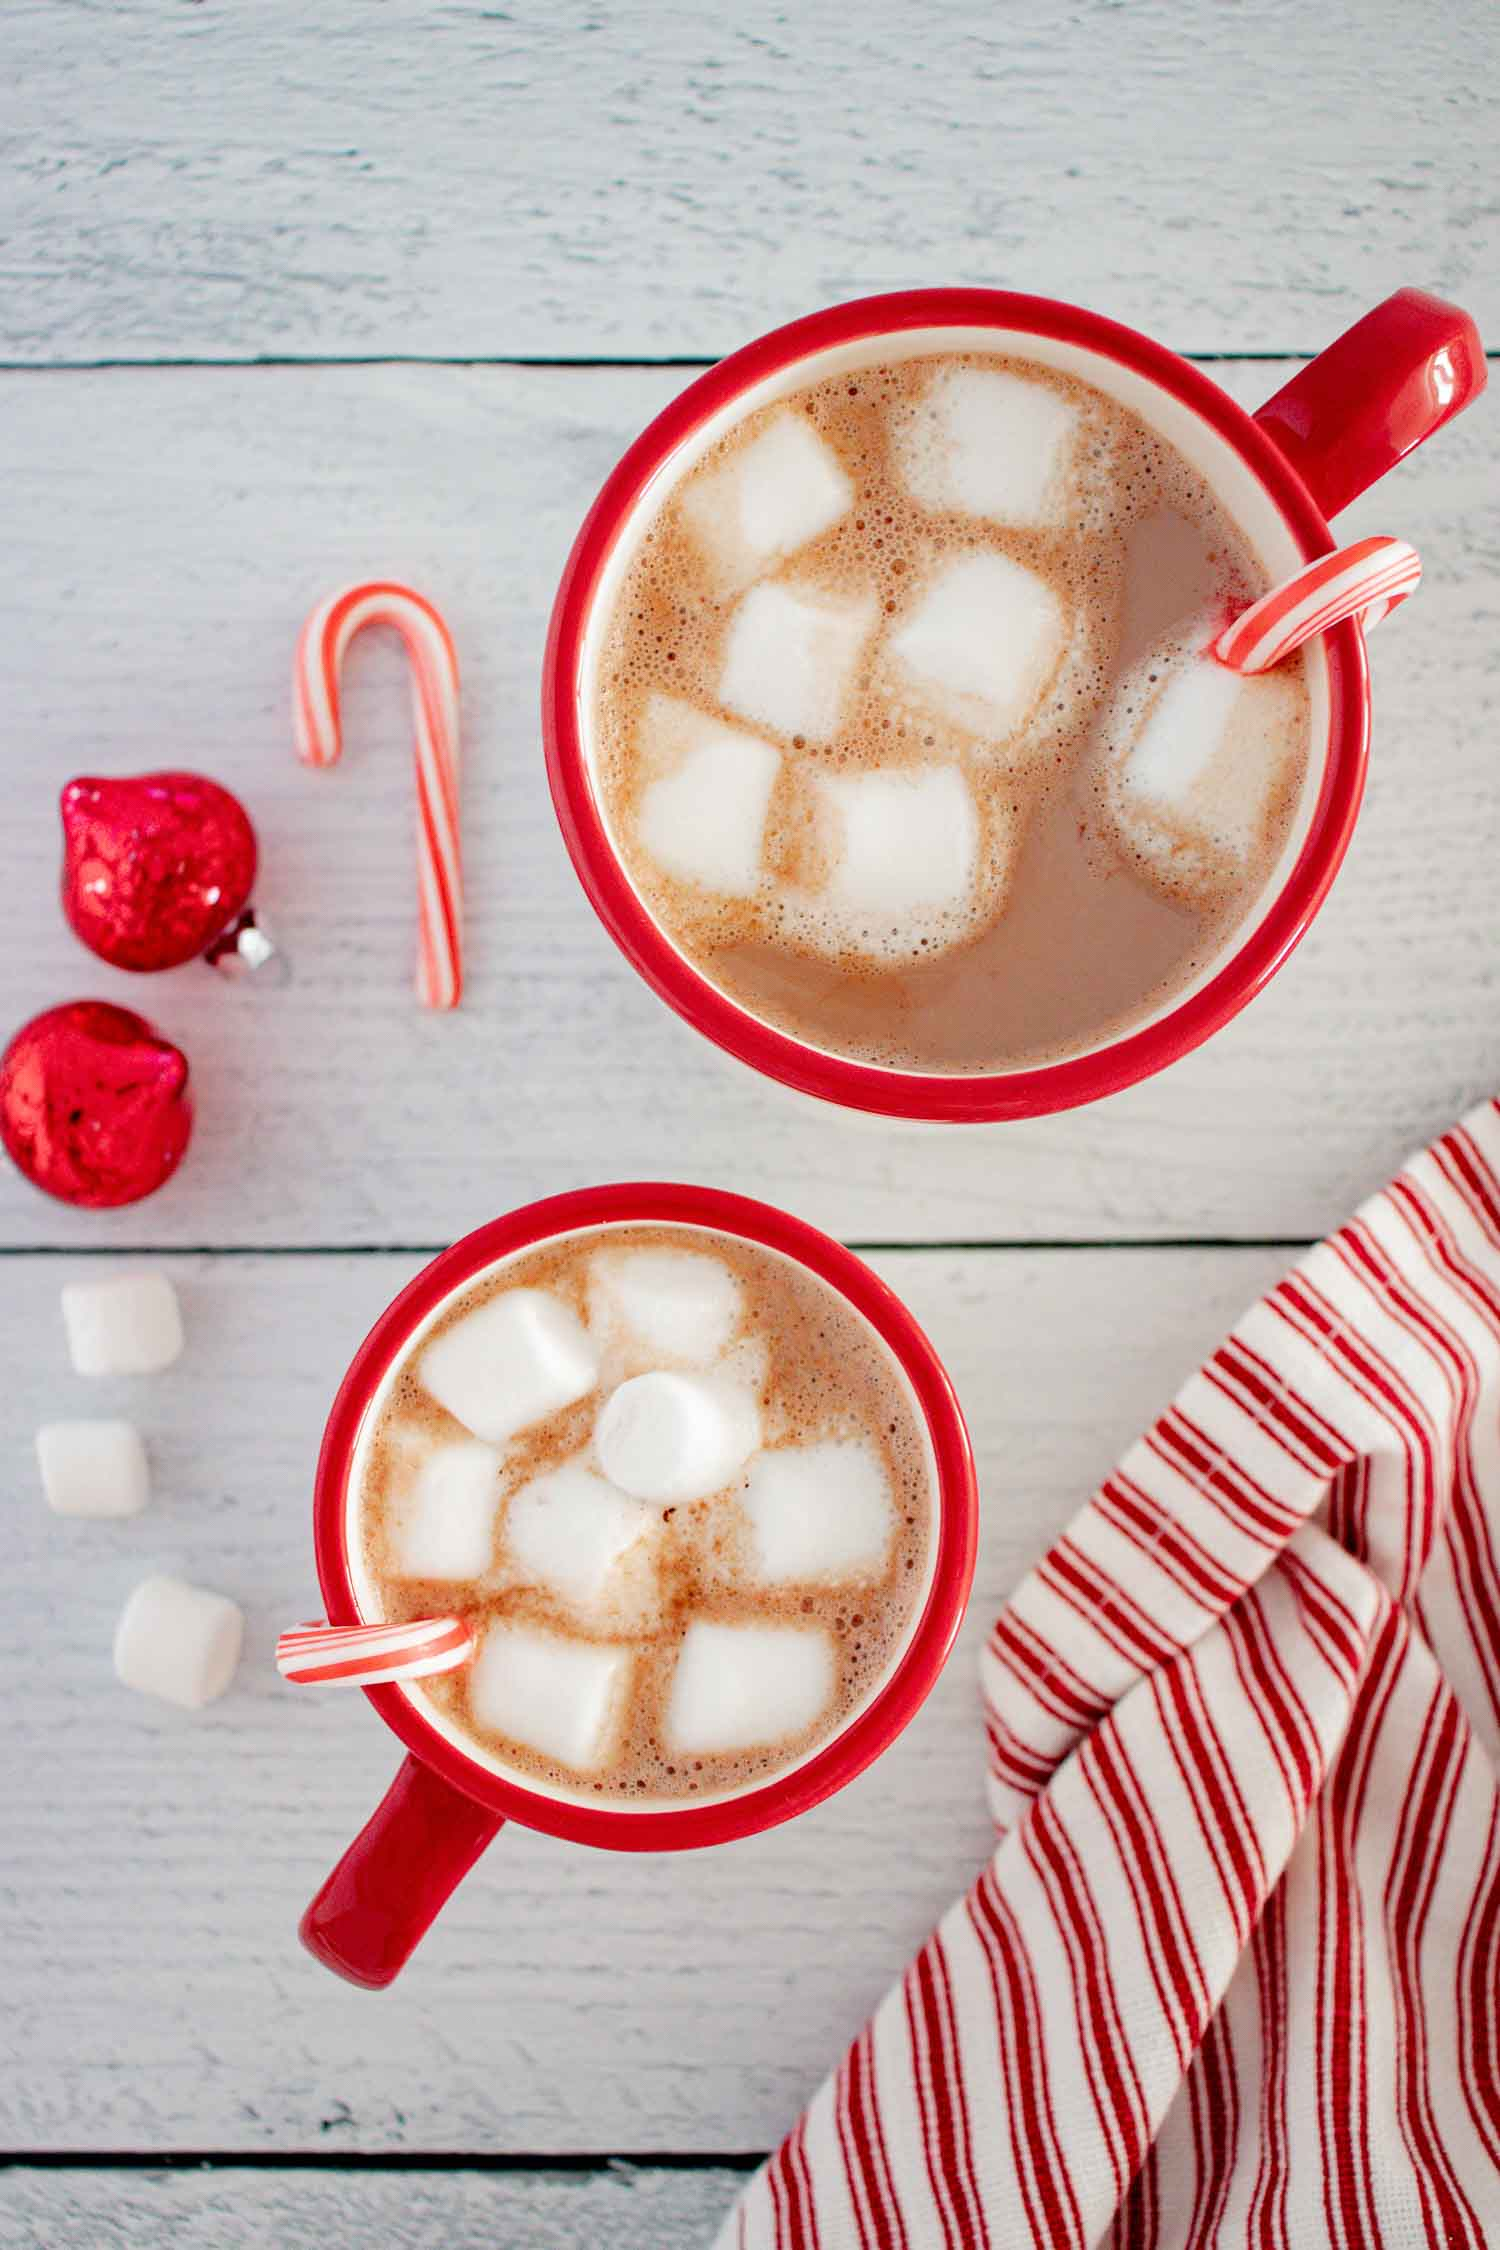 Two red mugs with filled with hot chocolate and marshmallows with a candy cane hanging off the side of the mug and candy canes and ornaments around it.